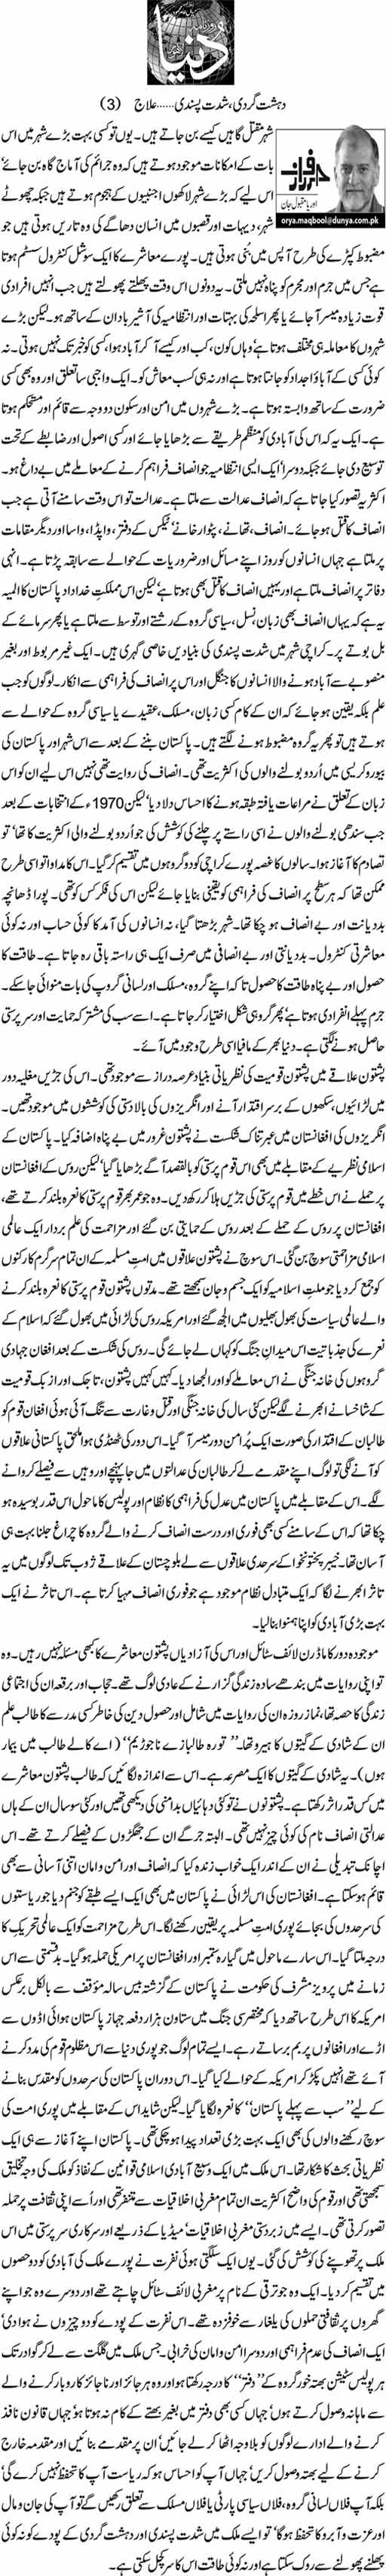 essay in urdu dehshat gardi in pakistan Dehshat gardi essay in gardi urdu валентин pakistan main  dehshat gardi uncategorized writing a compare and contrast essay tagged  javed.